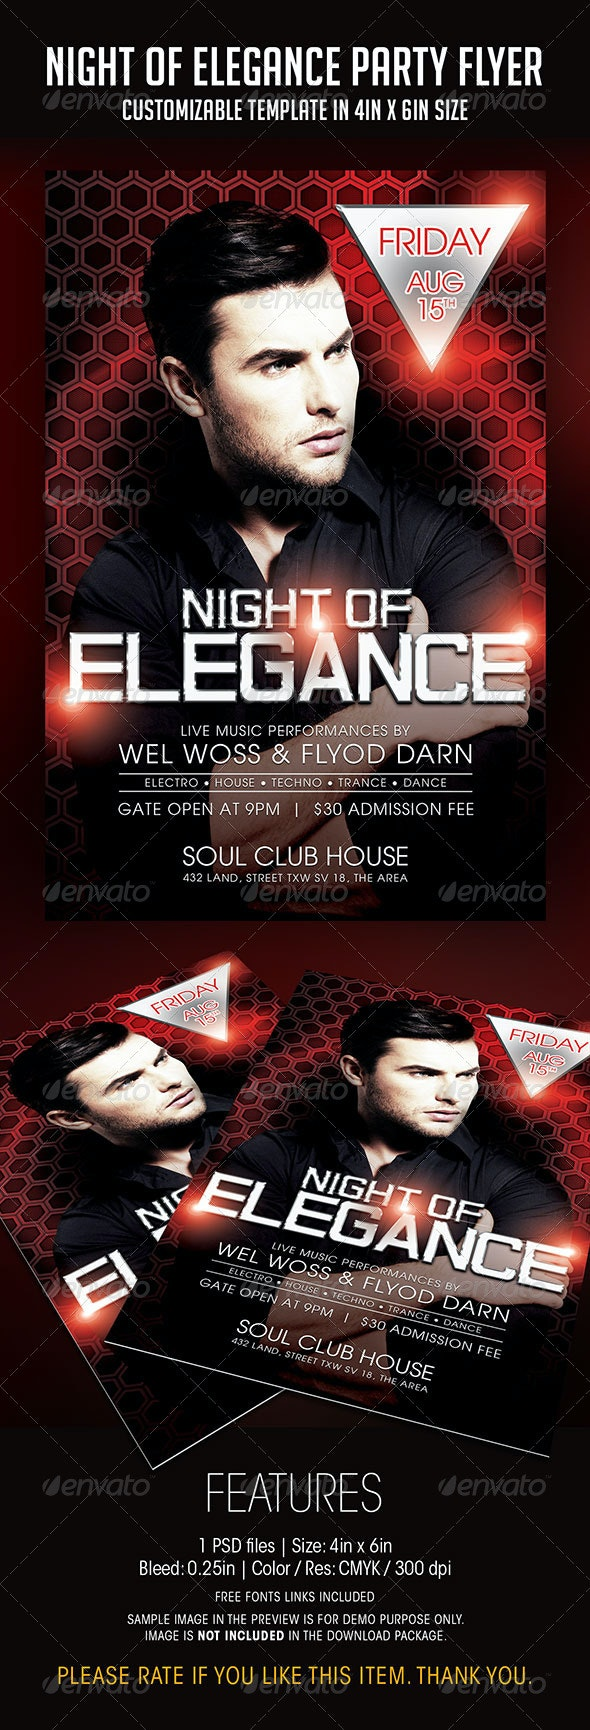 Night of Elegance Party Flyer - Clubs & Parties Events